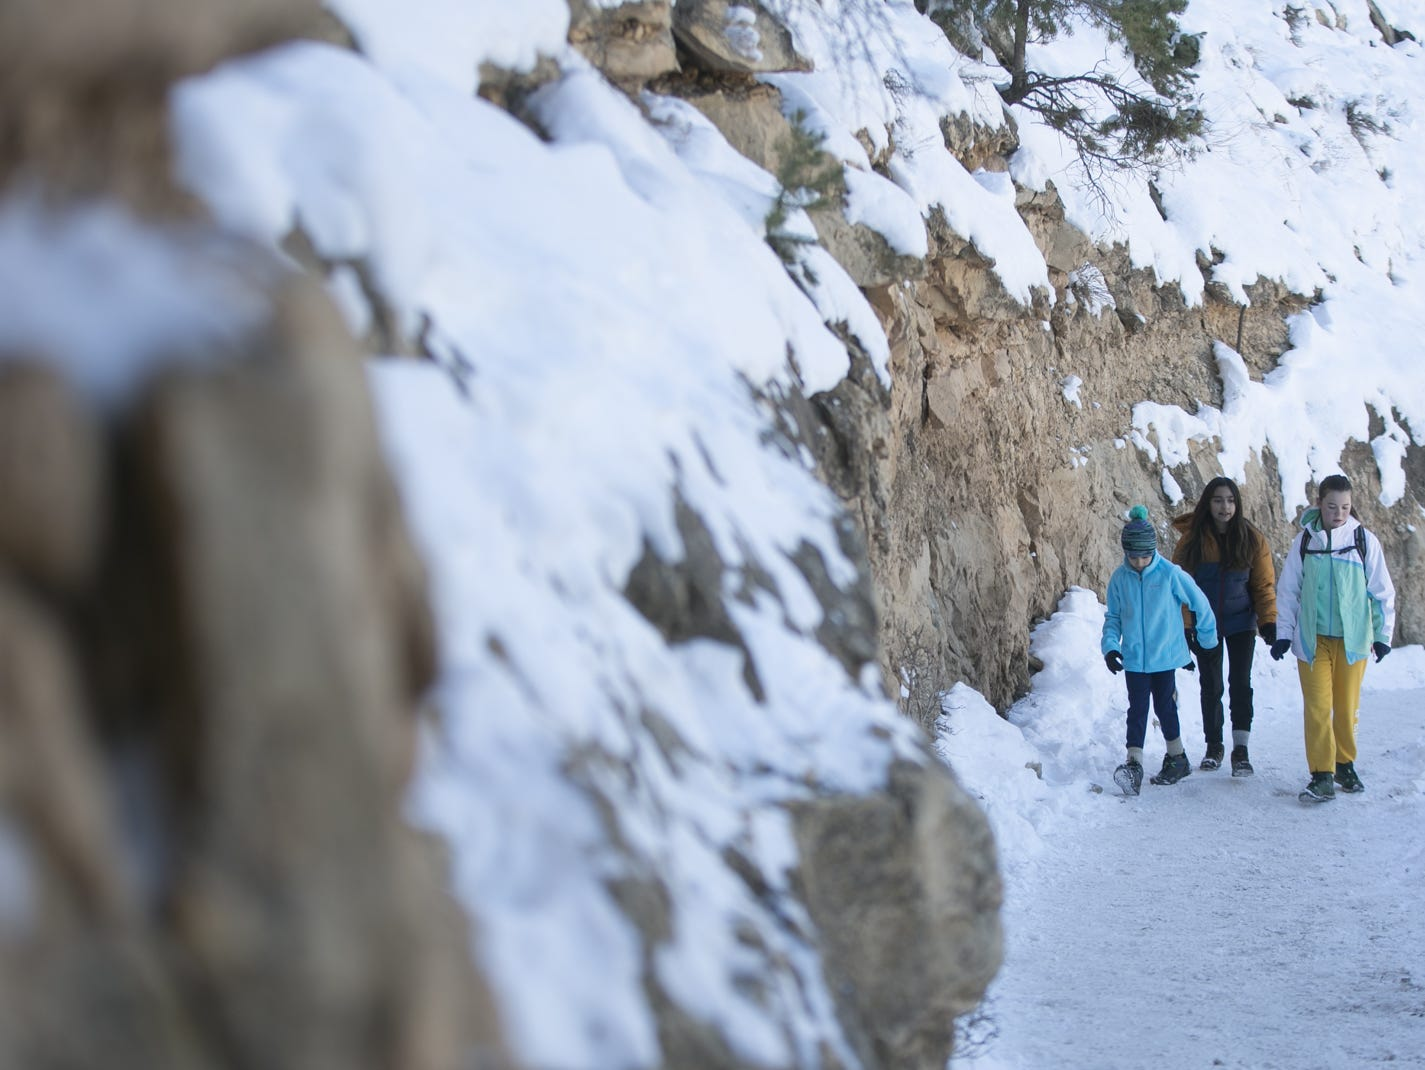 10-year-old Zara Ayala (left), 13-year-old Kayla Ayala (center) and 13-year-old Natalie O'Neill (right), visiting from Austin, Texas, hike along the Bright Angel Trail at Grand Canyon National Park on Jan. 4, 2019. The park was staffed at minimum capacity due to the government shutdown but retained much of its services due to an executive order issued by Arizona Gov. Doug Ducey to run the park with state funds in the event of a shutdown.